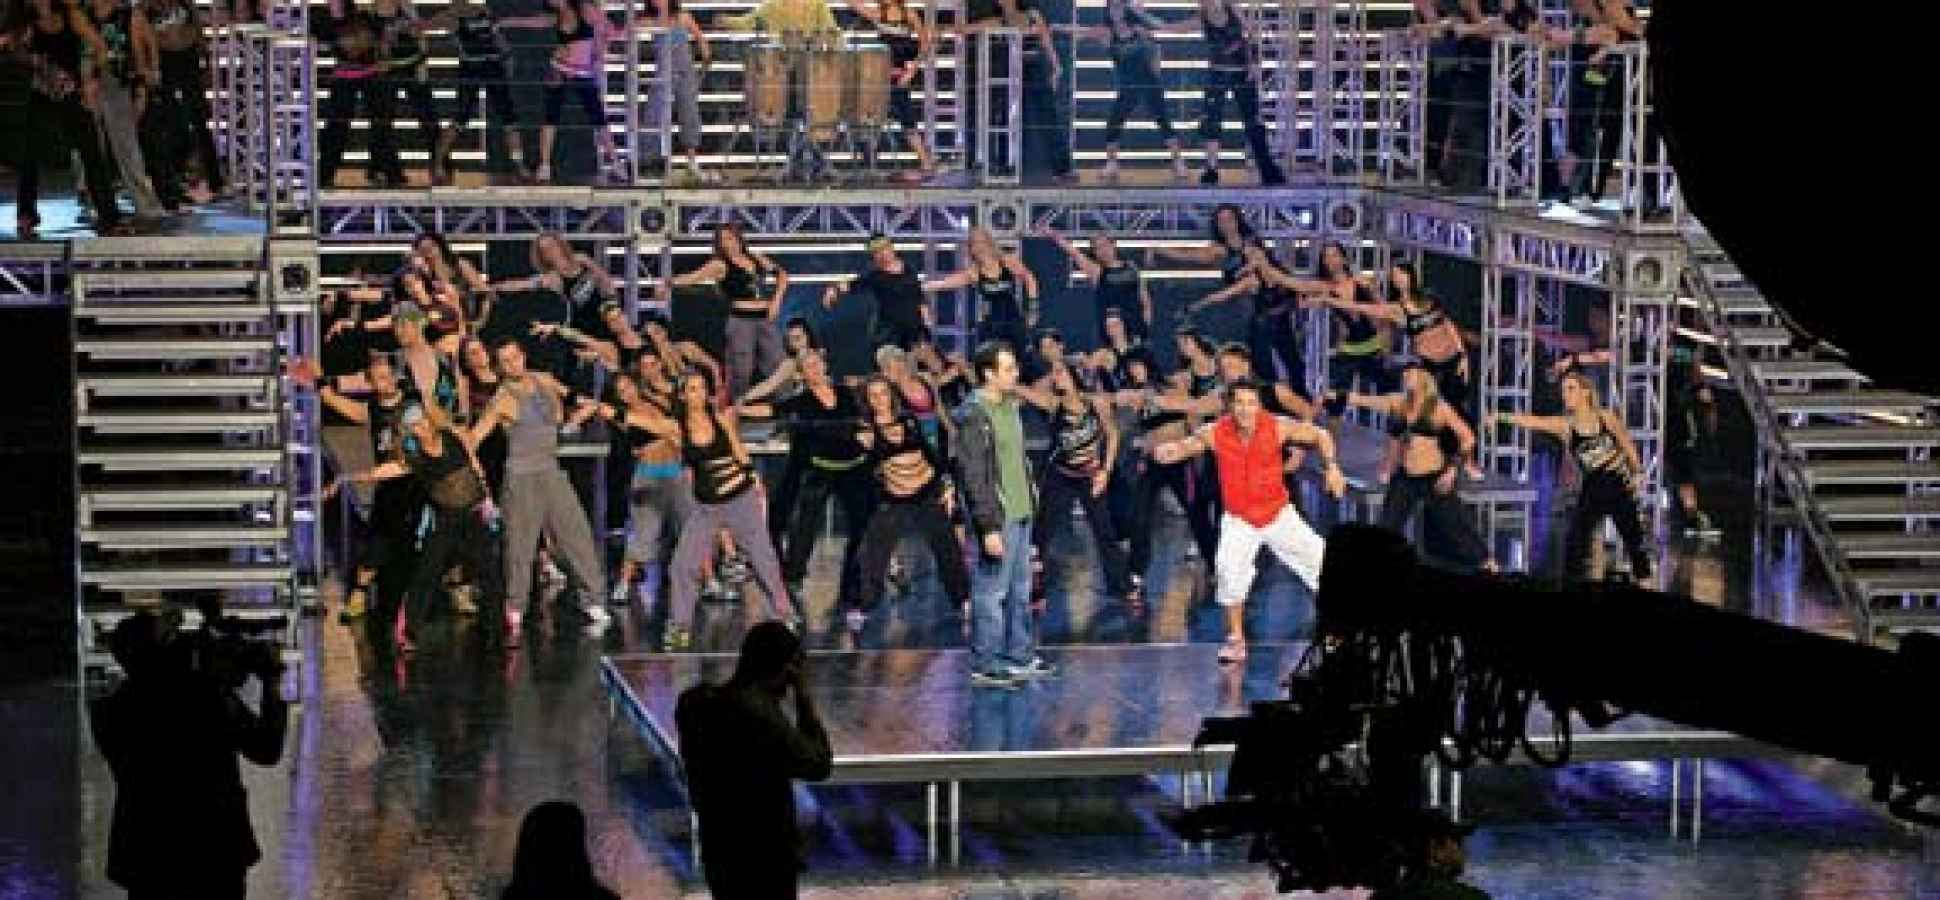 alberto beto perez in red leads a zumba video shoot onstage with him is alberto perlman